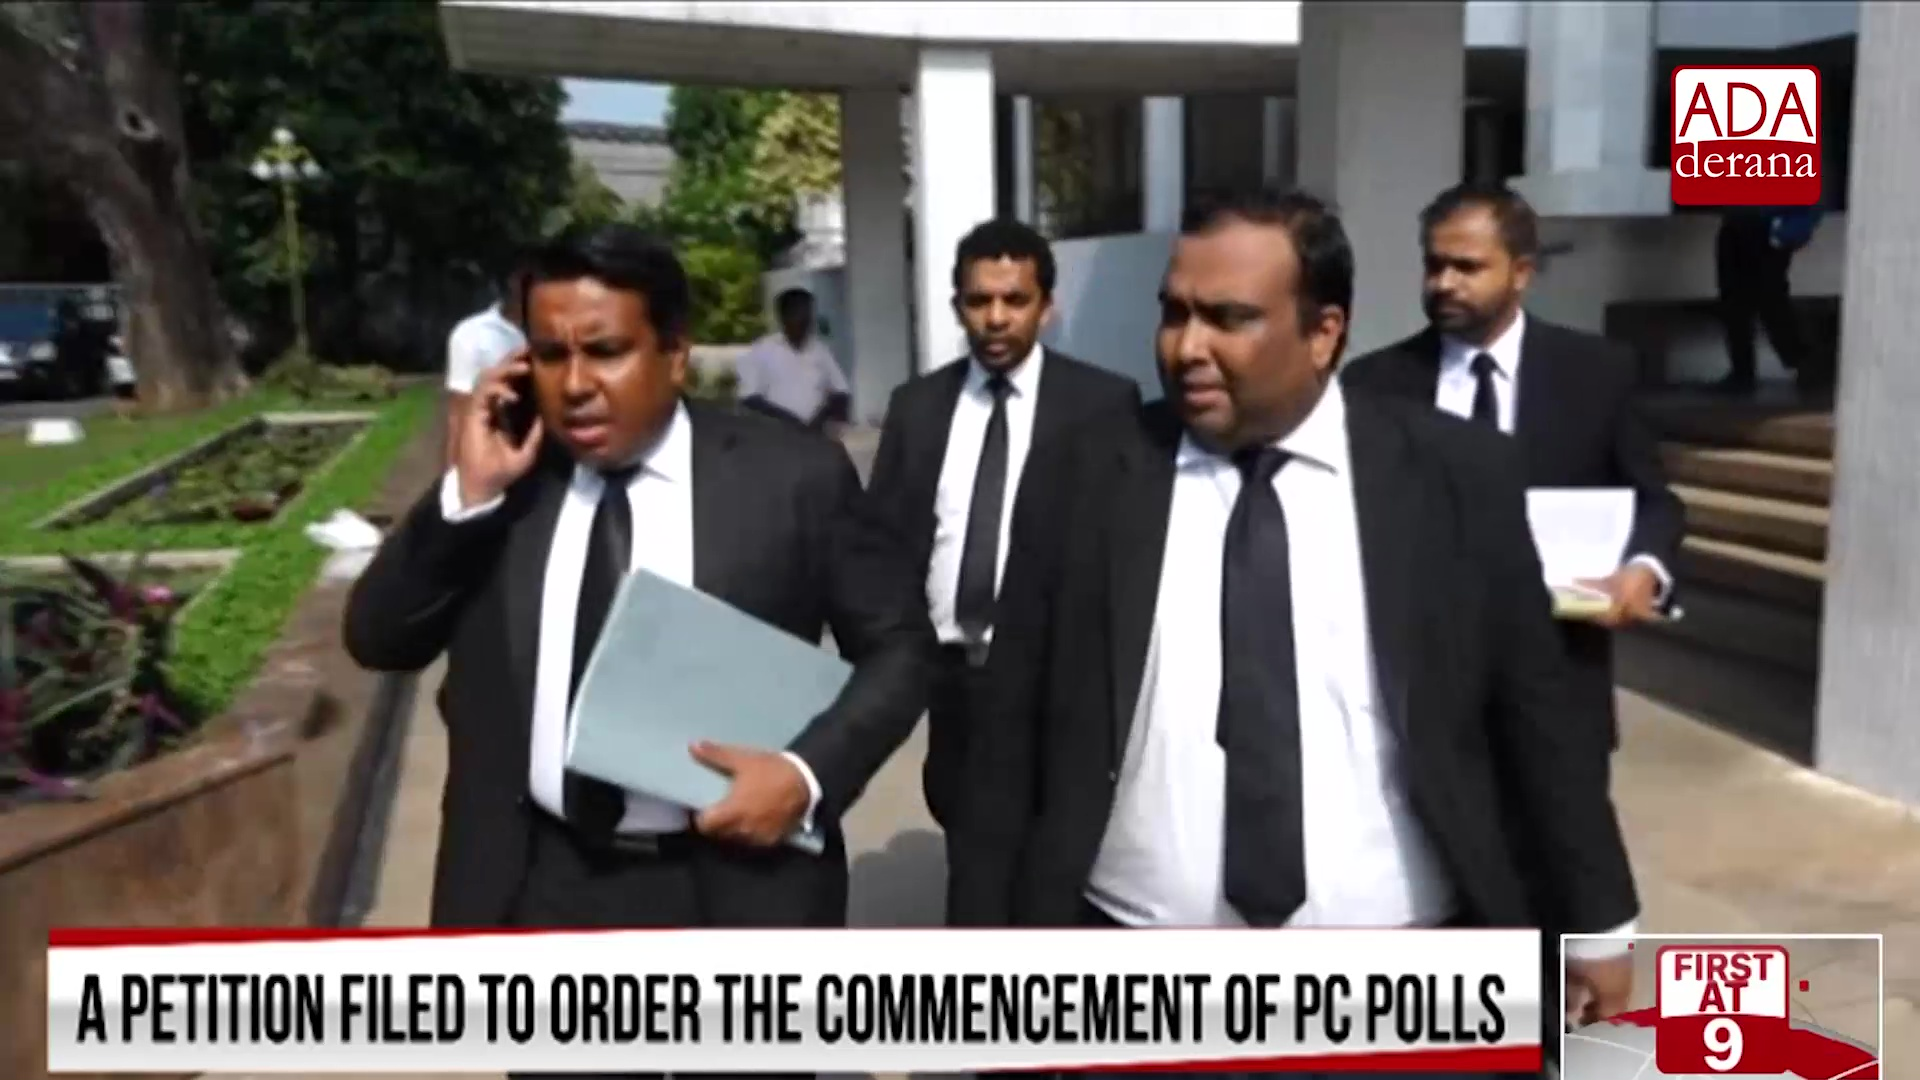 Petition seeking SC order calling for PC polls filed  (English)